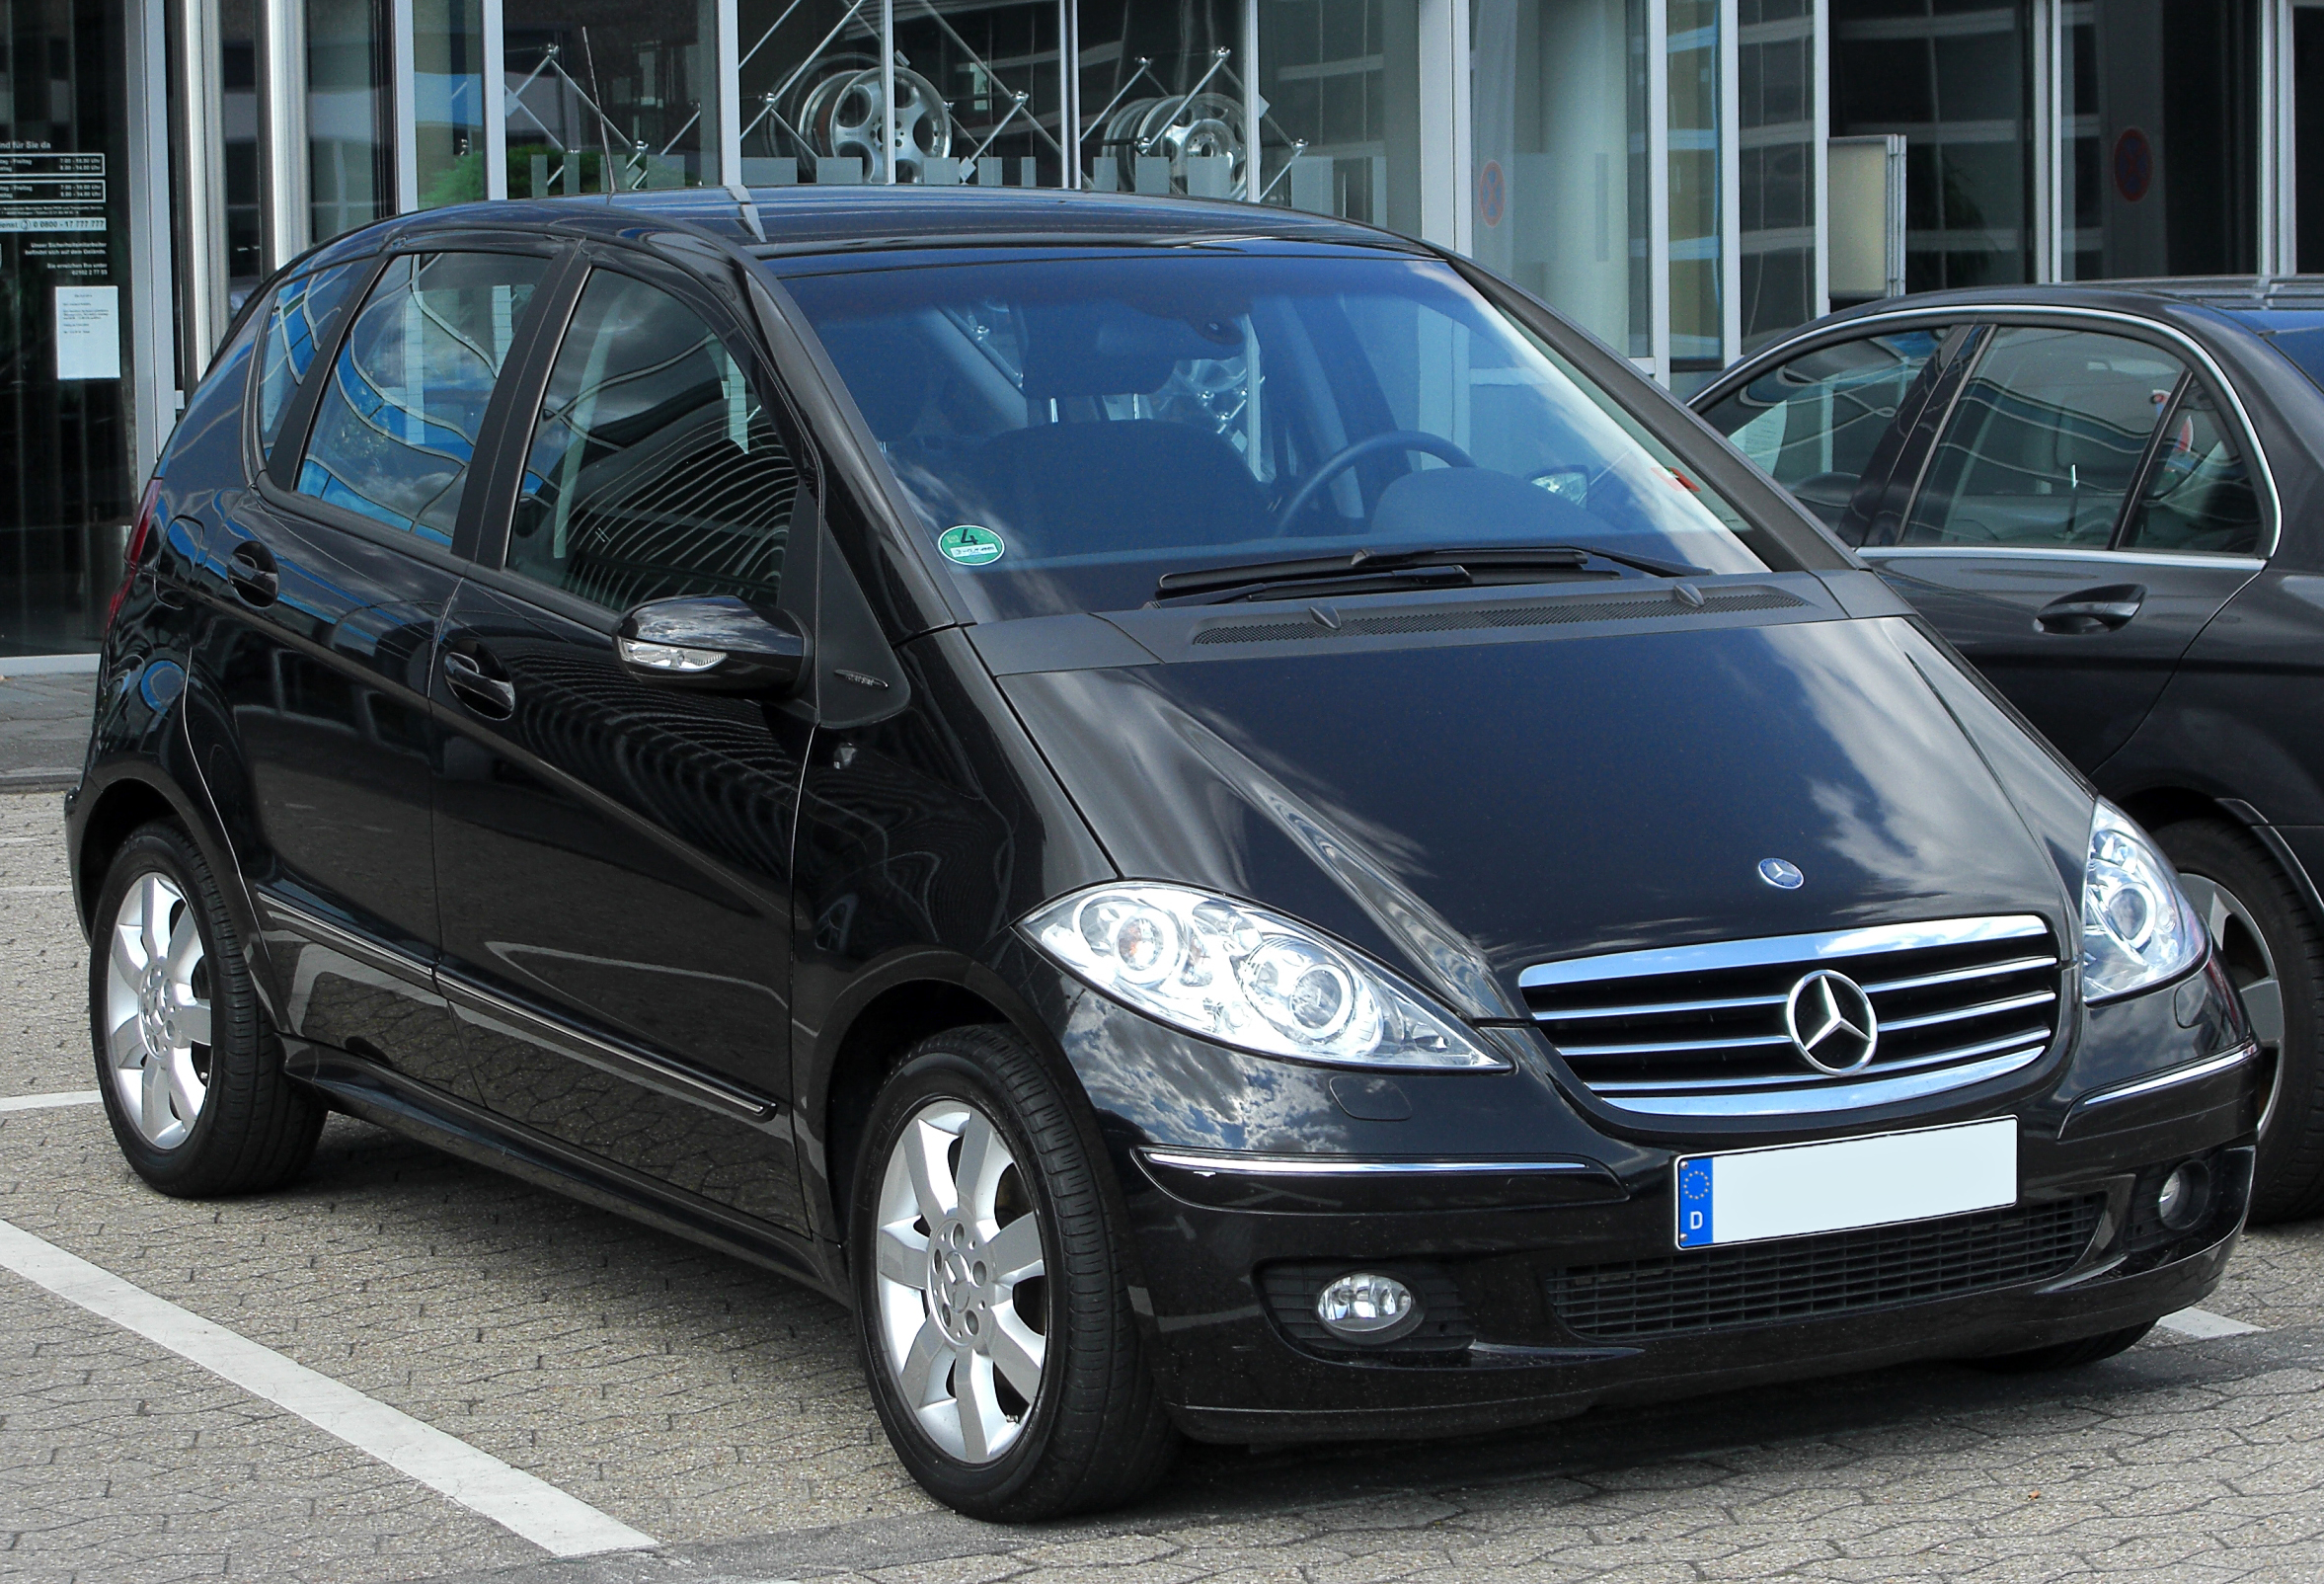 file mercedes a 180 cdi polar star w169 front wikimedia commons. Black Bedroom Furniture Sets. Home Design Ideas